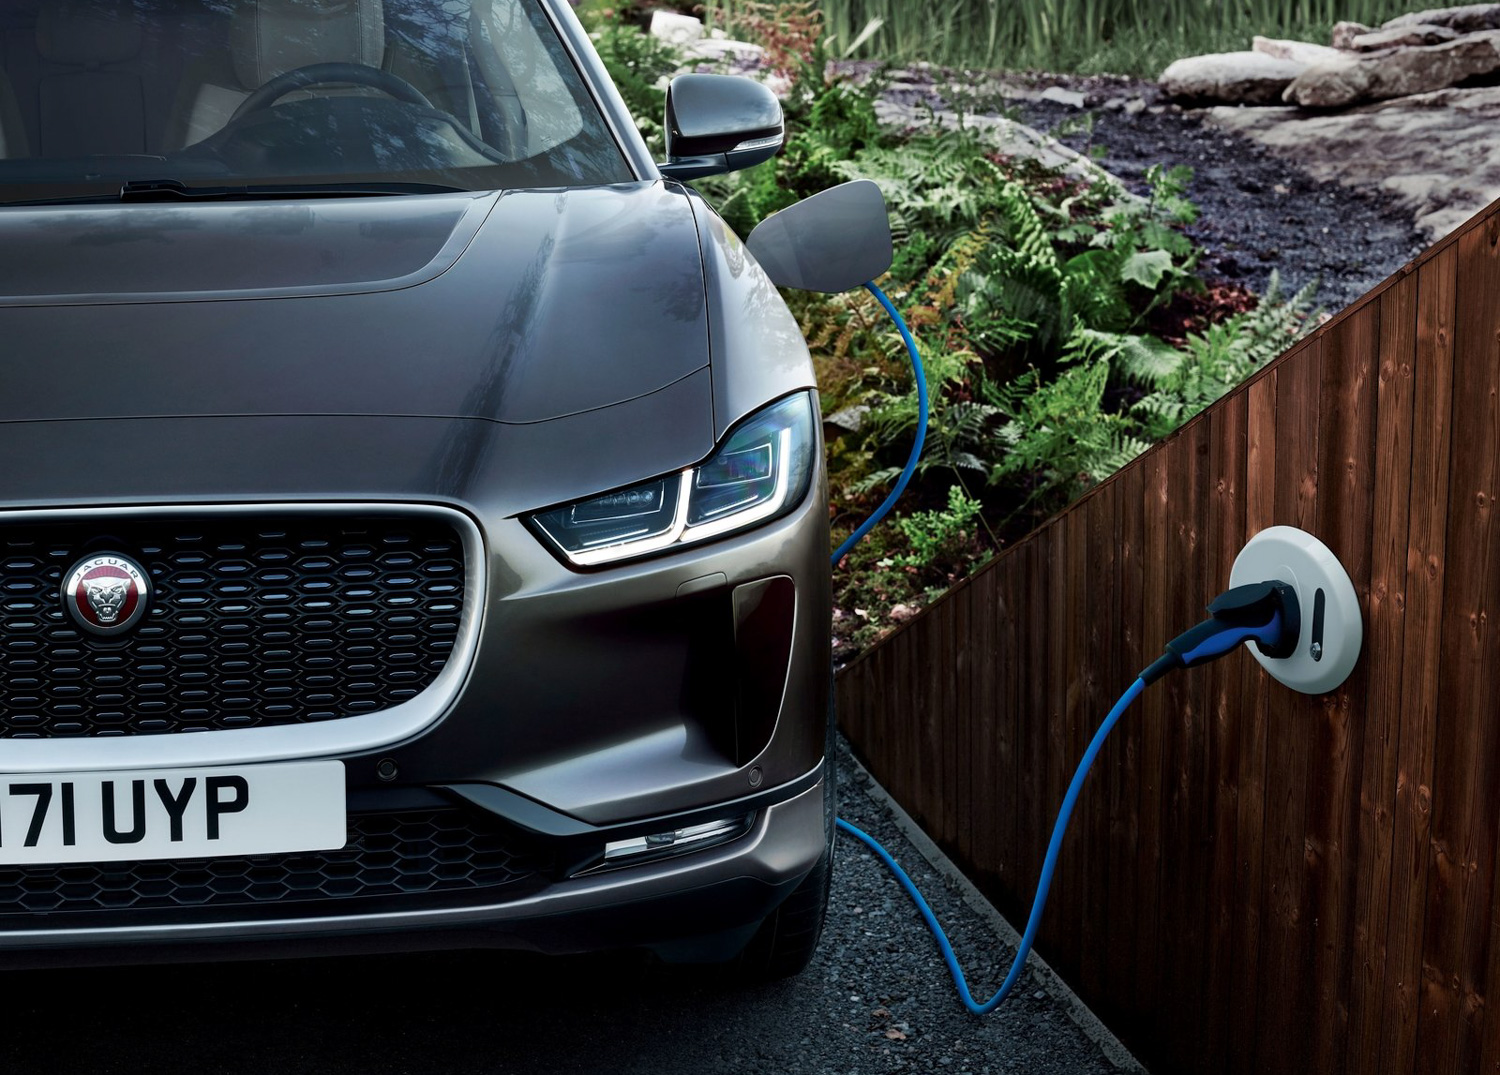 2019 Jaguar I-Pace plugged in